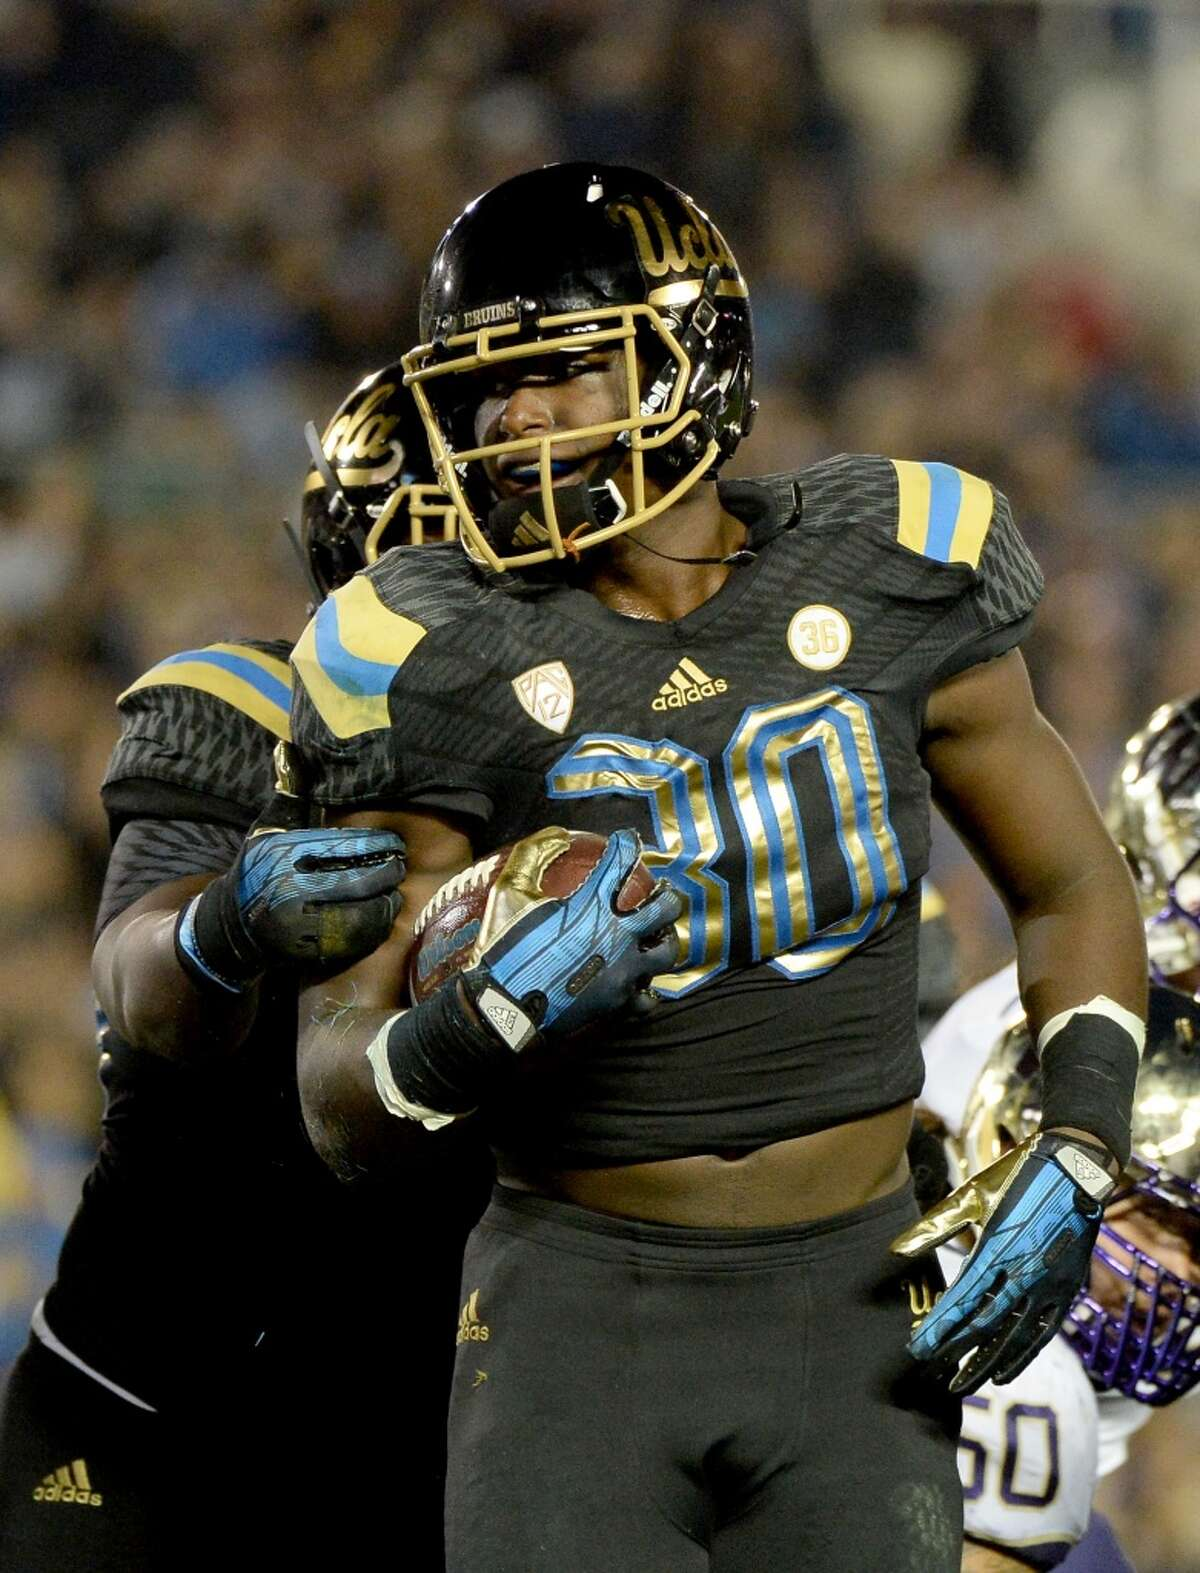 OLB Myles Jack, UCLA Height/weight: 6-1, 245 40-yard dash: 4.56 Knee surgery to repair a torn meniscus in September cost him a season, but he was a two-year starter who played linebacker, safety and running back. Perhaps the best athlete in the draft. Some teams like him as a big strong safety who can blitz or drop into coverage. He also can be a big-time rusher in a 3-4. Some teams have concerns about his knee. He should be a top-10 pick.